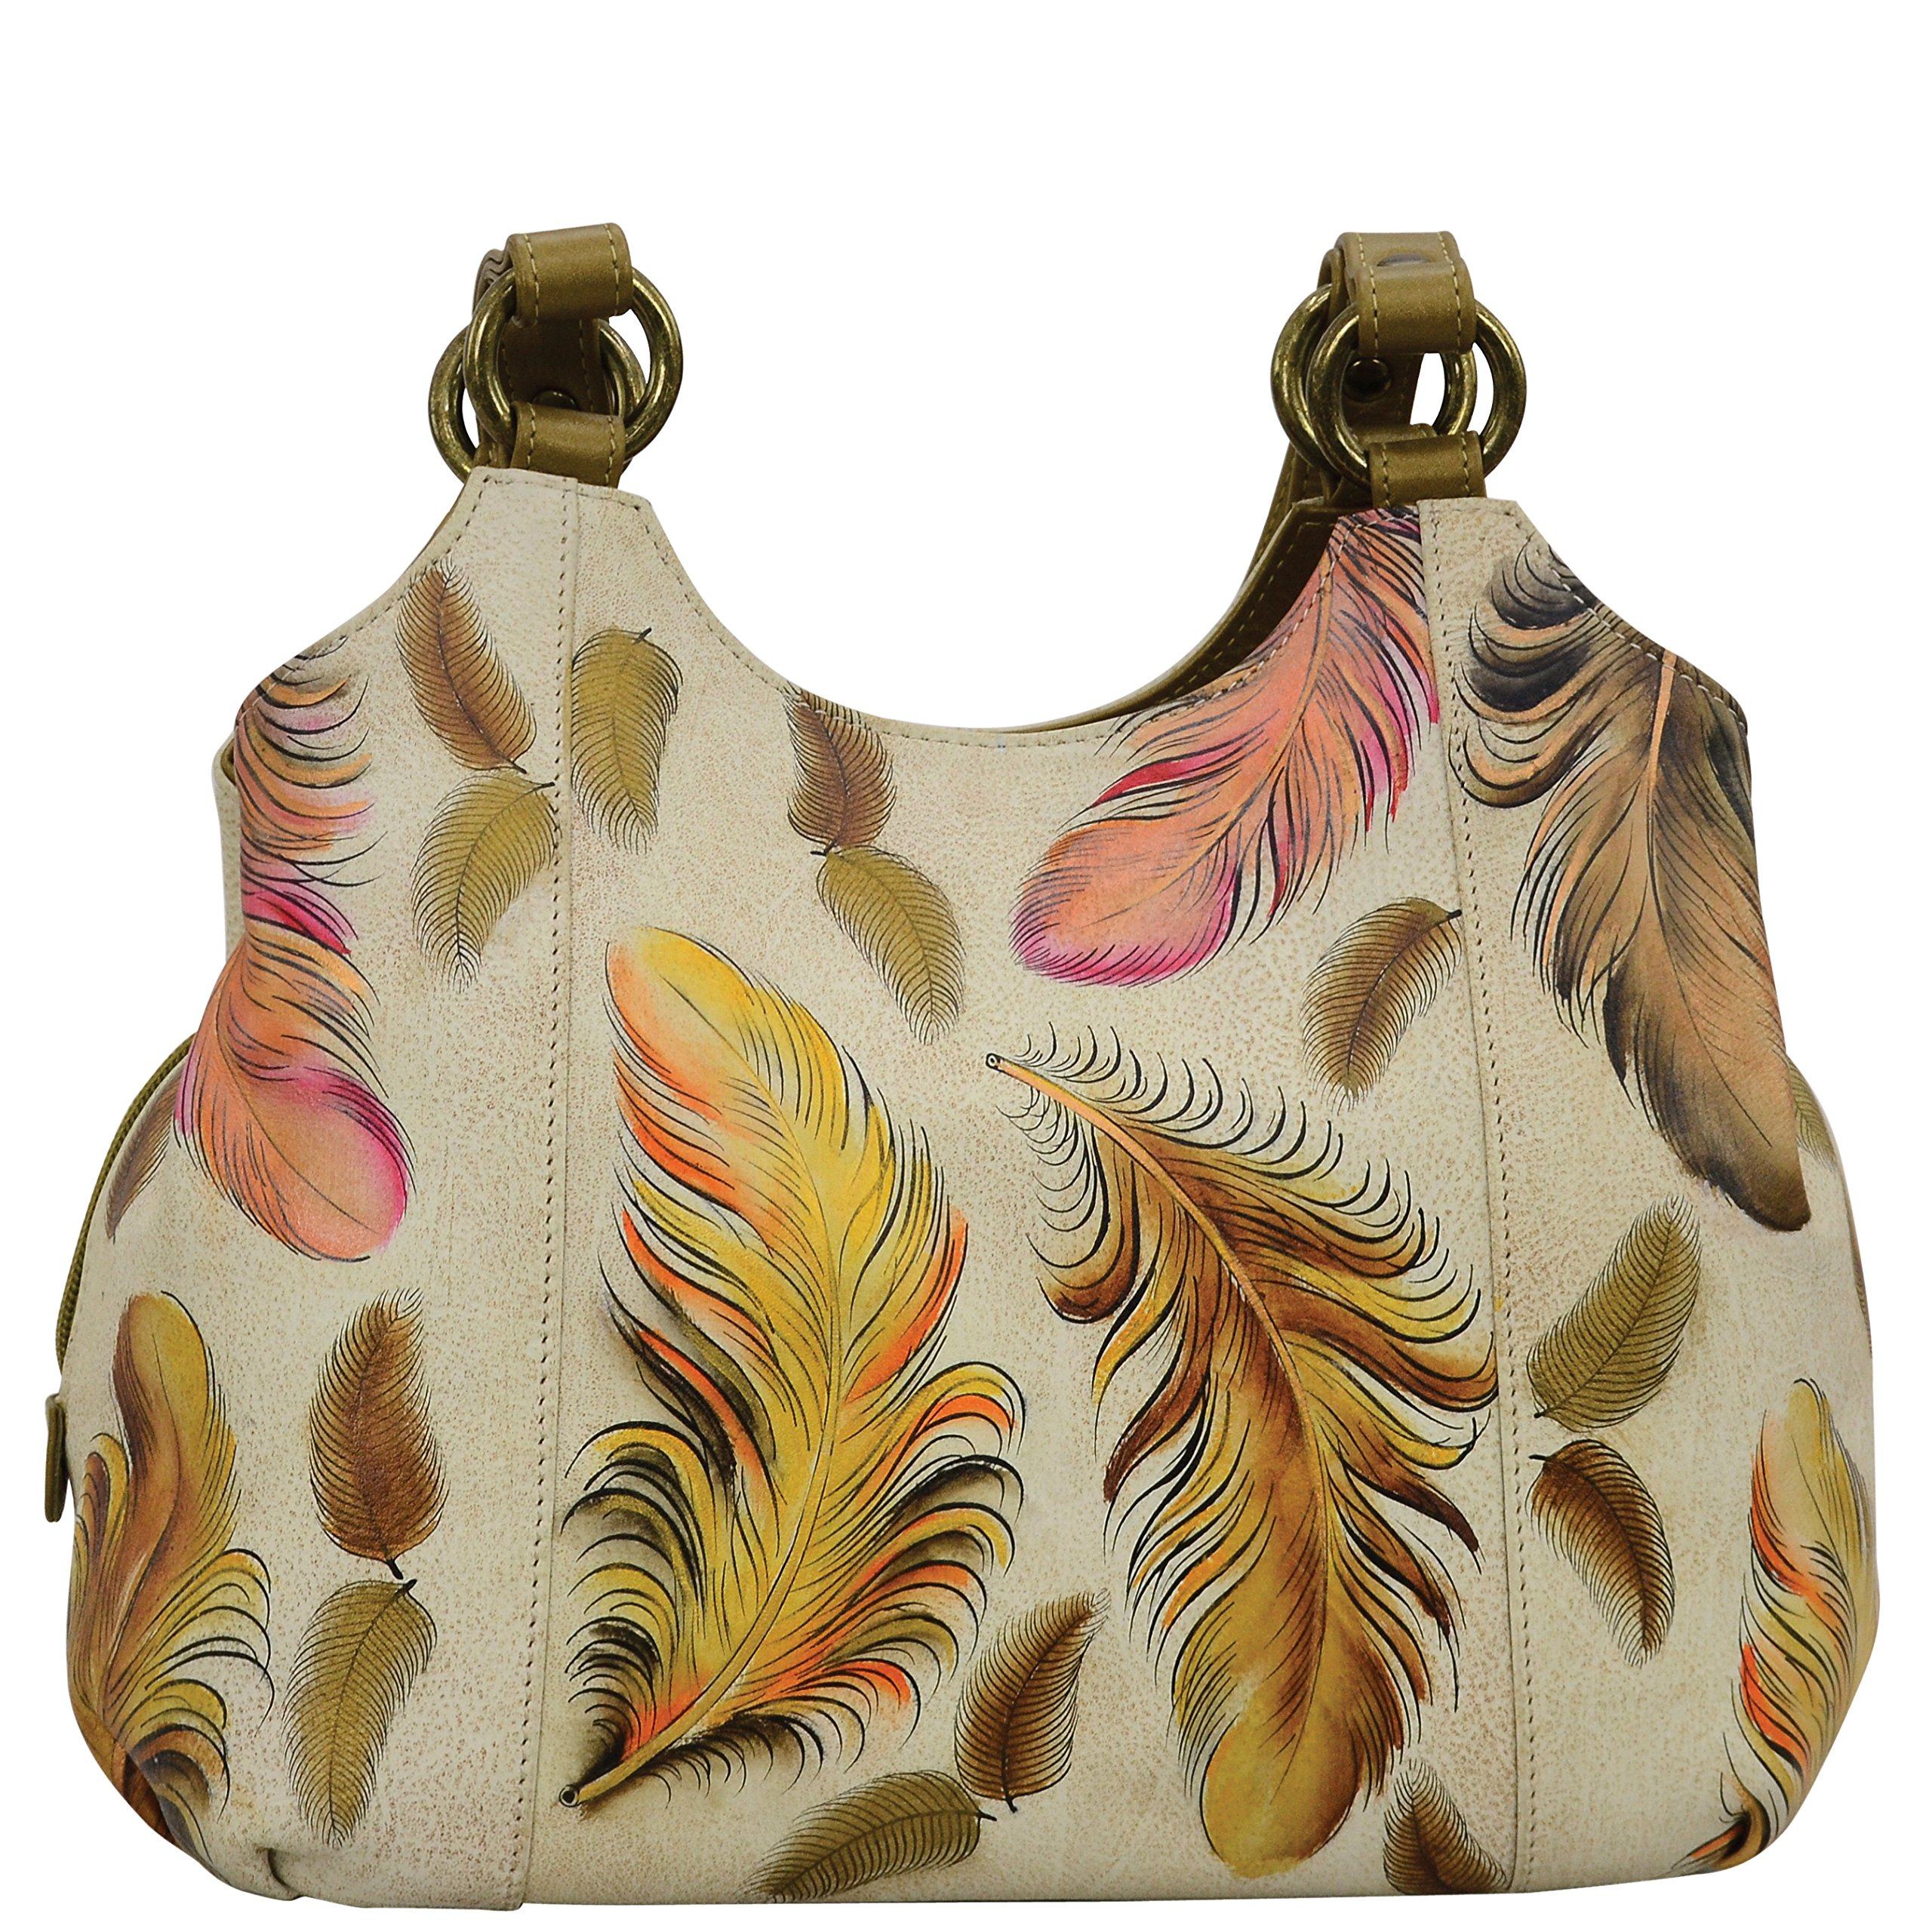 Anuschka Hand Painted Designer Leather Handbags for Women – Christmas Gifts- Leather satchel with 3 compartments (Floating Feathers Ivory 469 FFT-I)